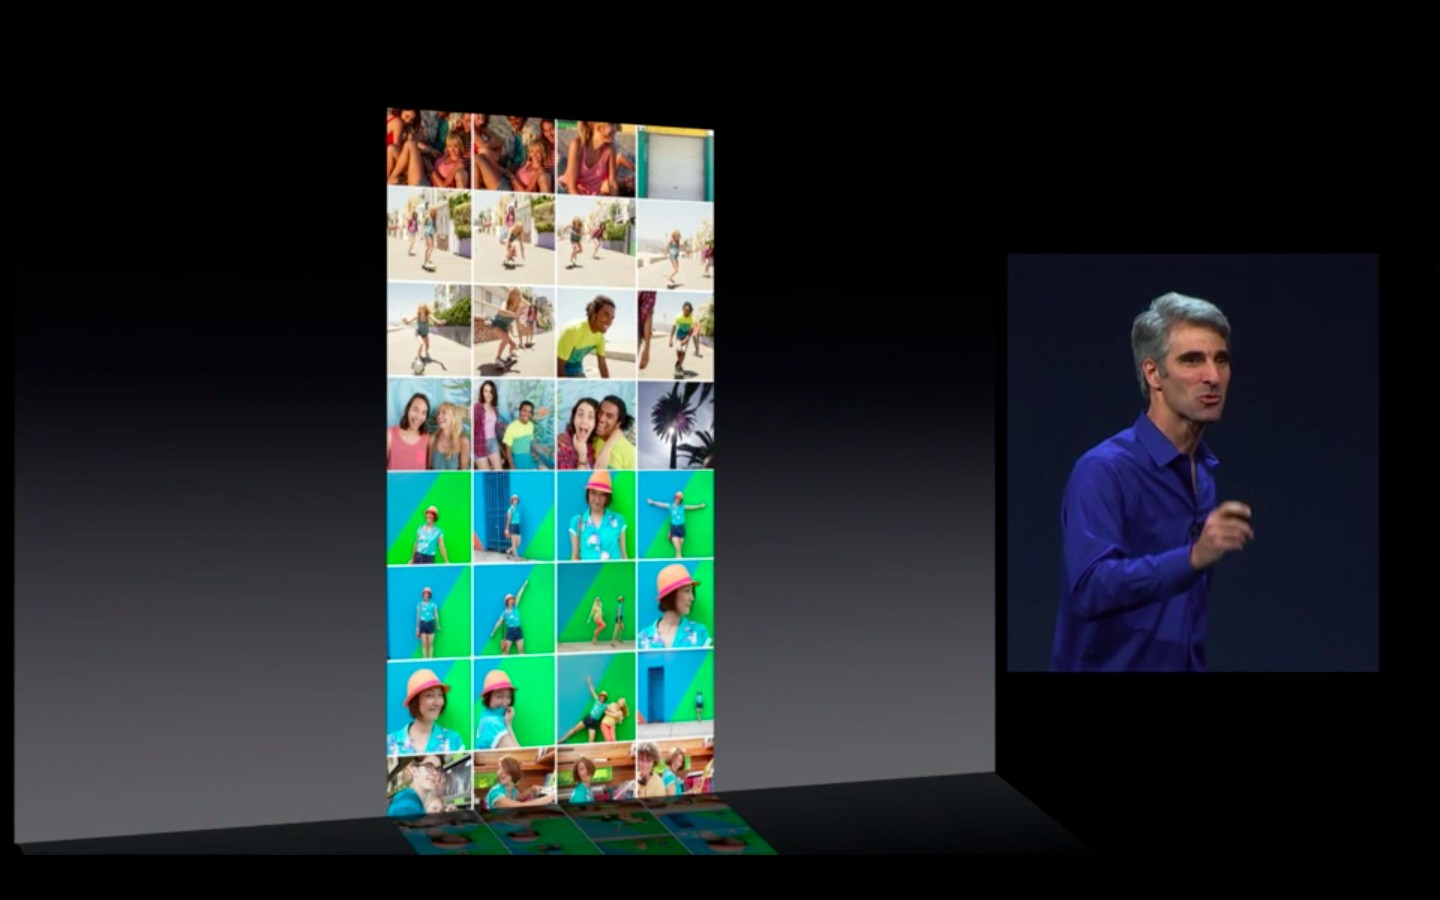 Apple: iOS 7 mit Multitasking und neuem Interface - Lange Listen... (Bild: Apple/Screenshot: Golem.de)